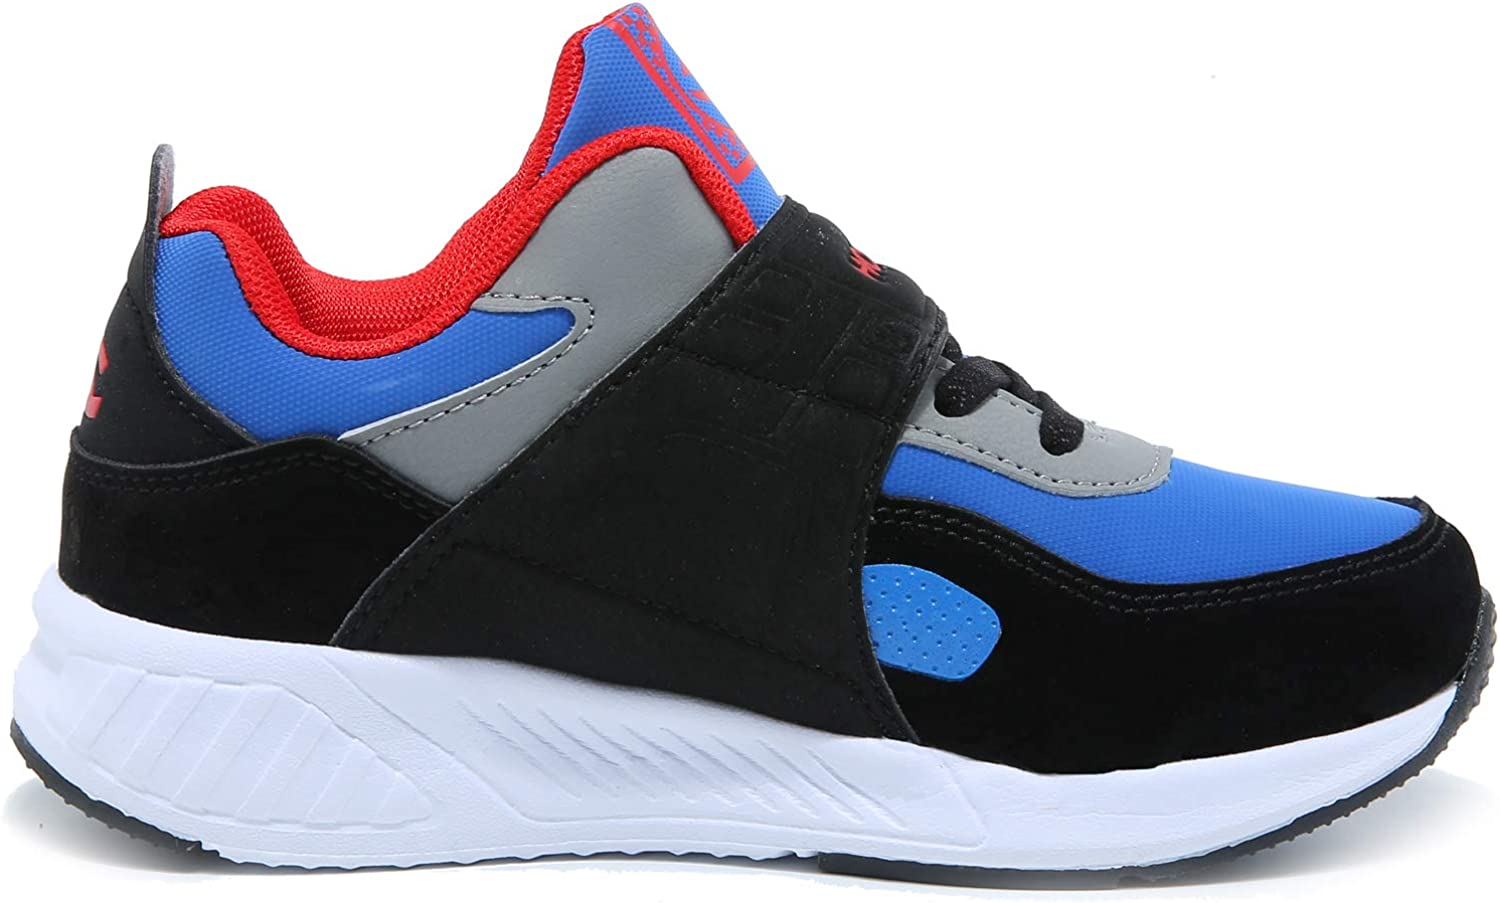 Unisex-Kids Sports Shoes Boys Trainers Girls Running Shoes Sneakers